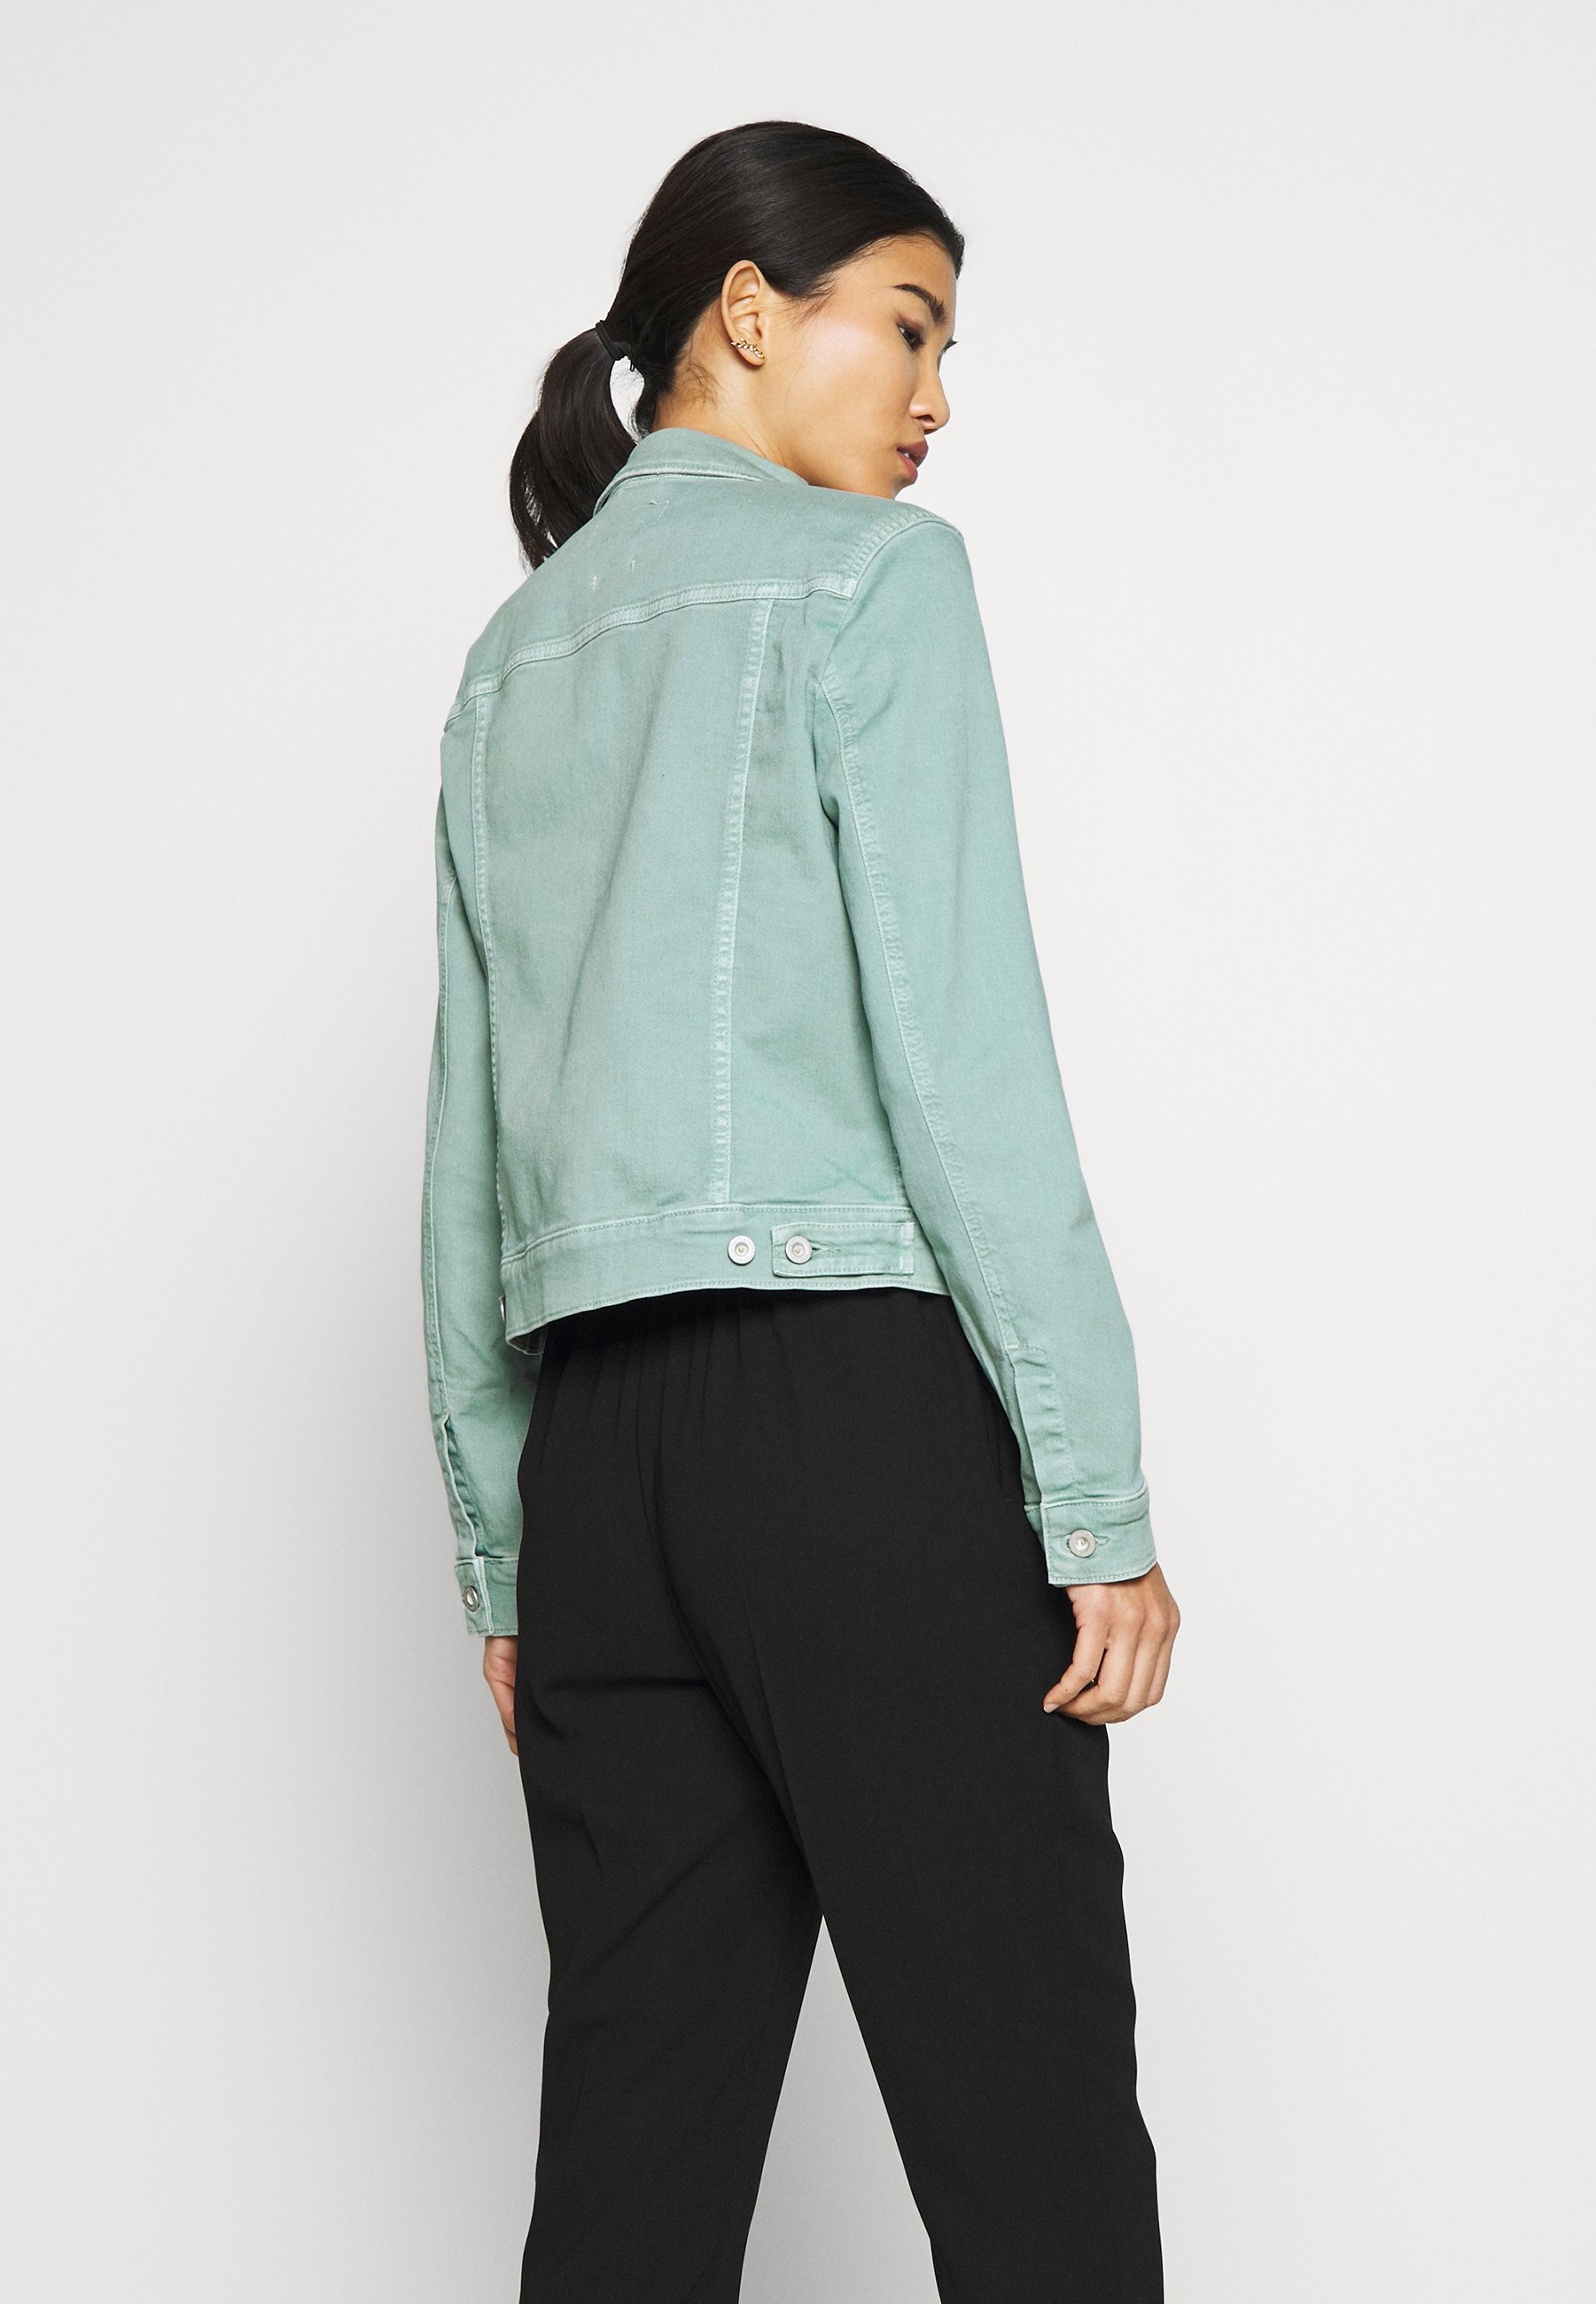 Marc O'polo Jacket Button Closure Garment Dyed - Giacca Di Jeans Misty Spearmint C4Iwekx